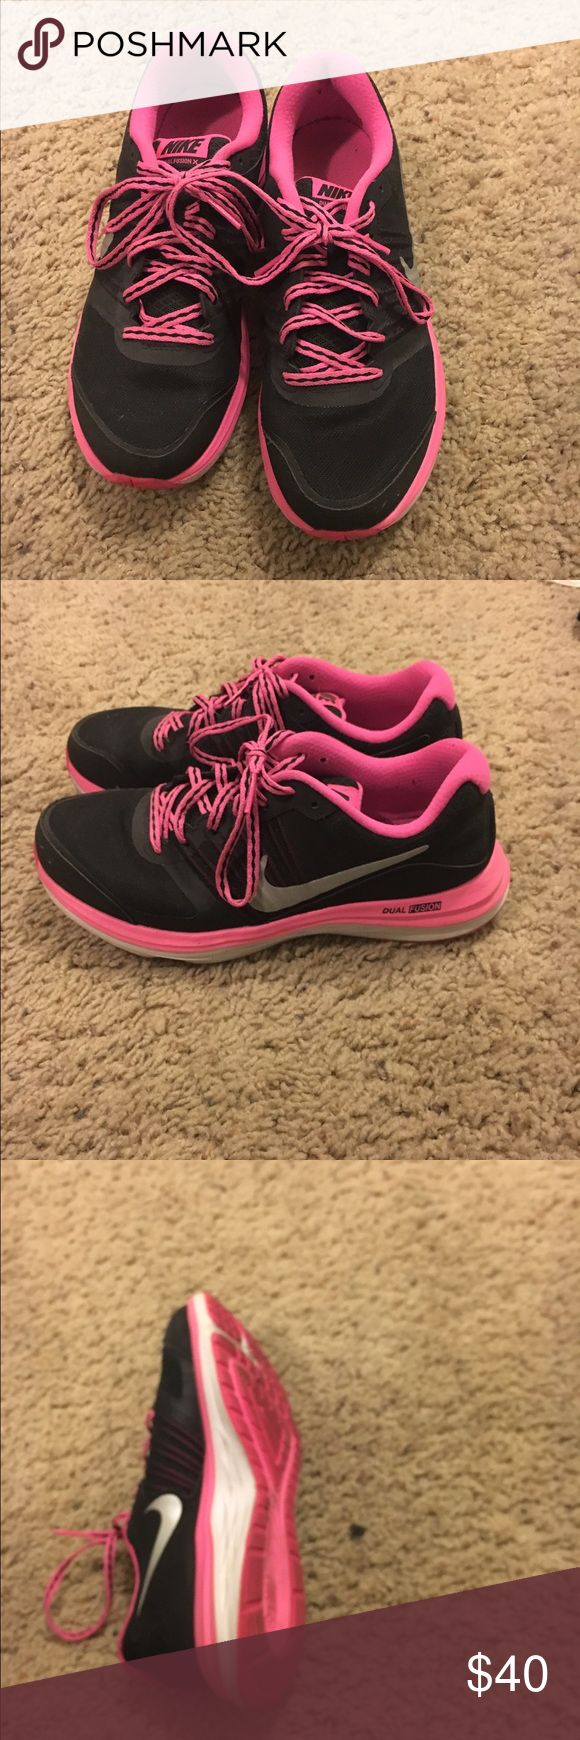 Nike dual fusion x Worn once to the gym Nike dual fusion x shoes. Bought in youth size 5.5 but are same as size 7 women's. Great condition. Too big for me. Nike Shoes Athletic Shoes